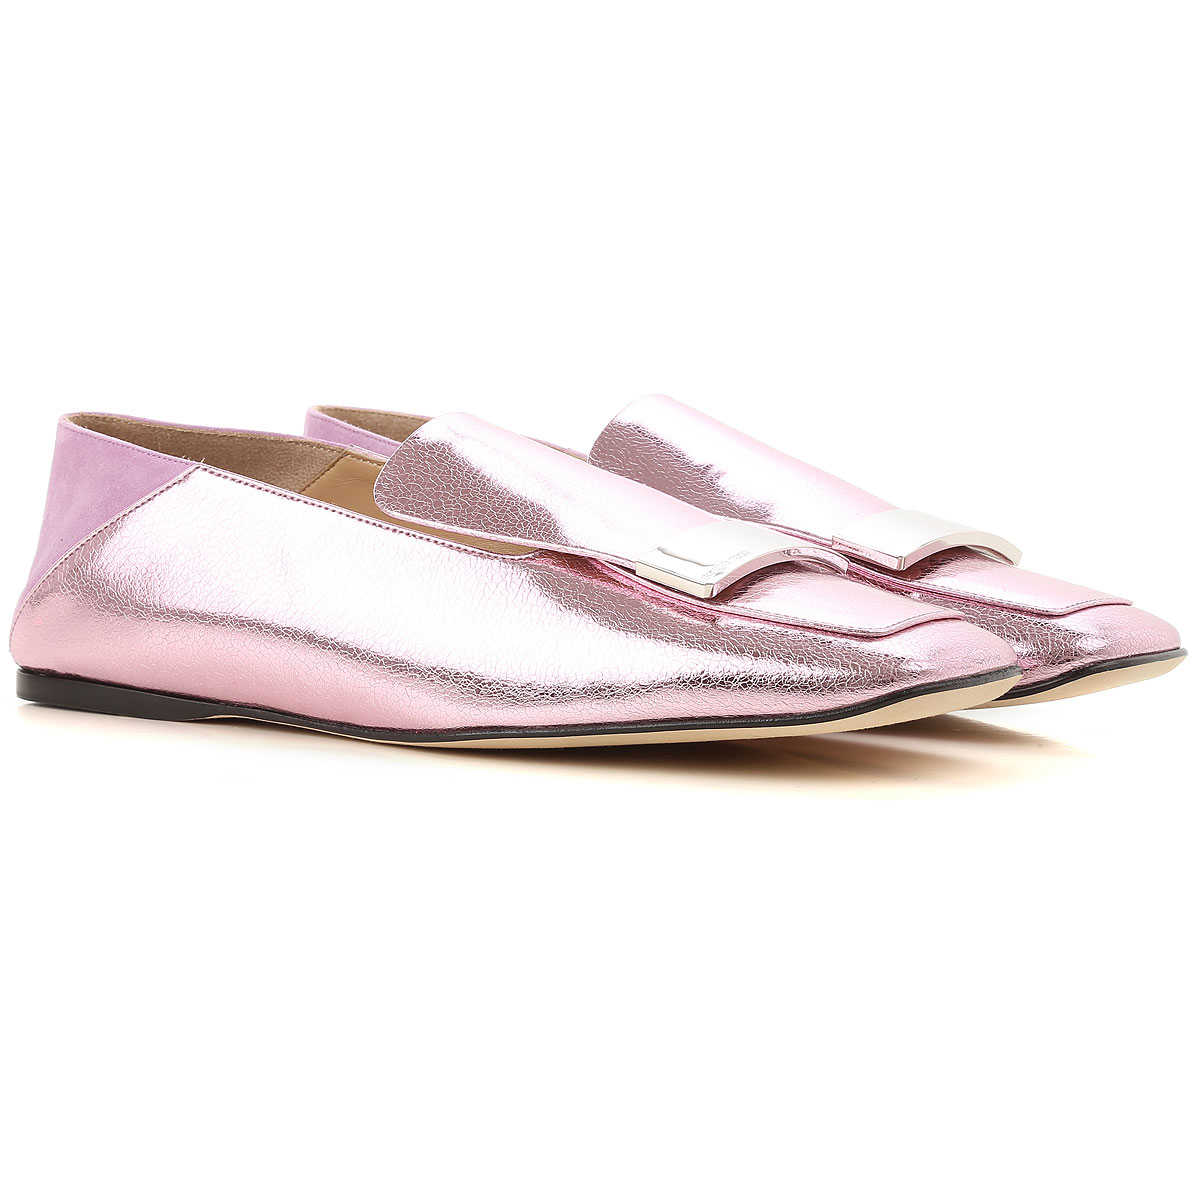 Sergio Rossi Loafers for Women On Sale in Outlet Peony SE - GOOFASH